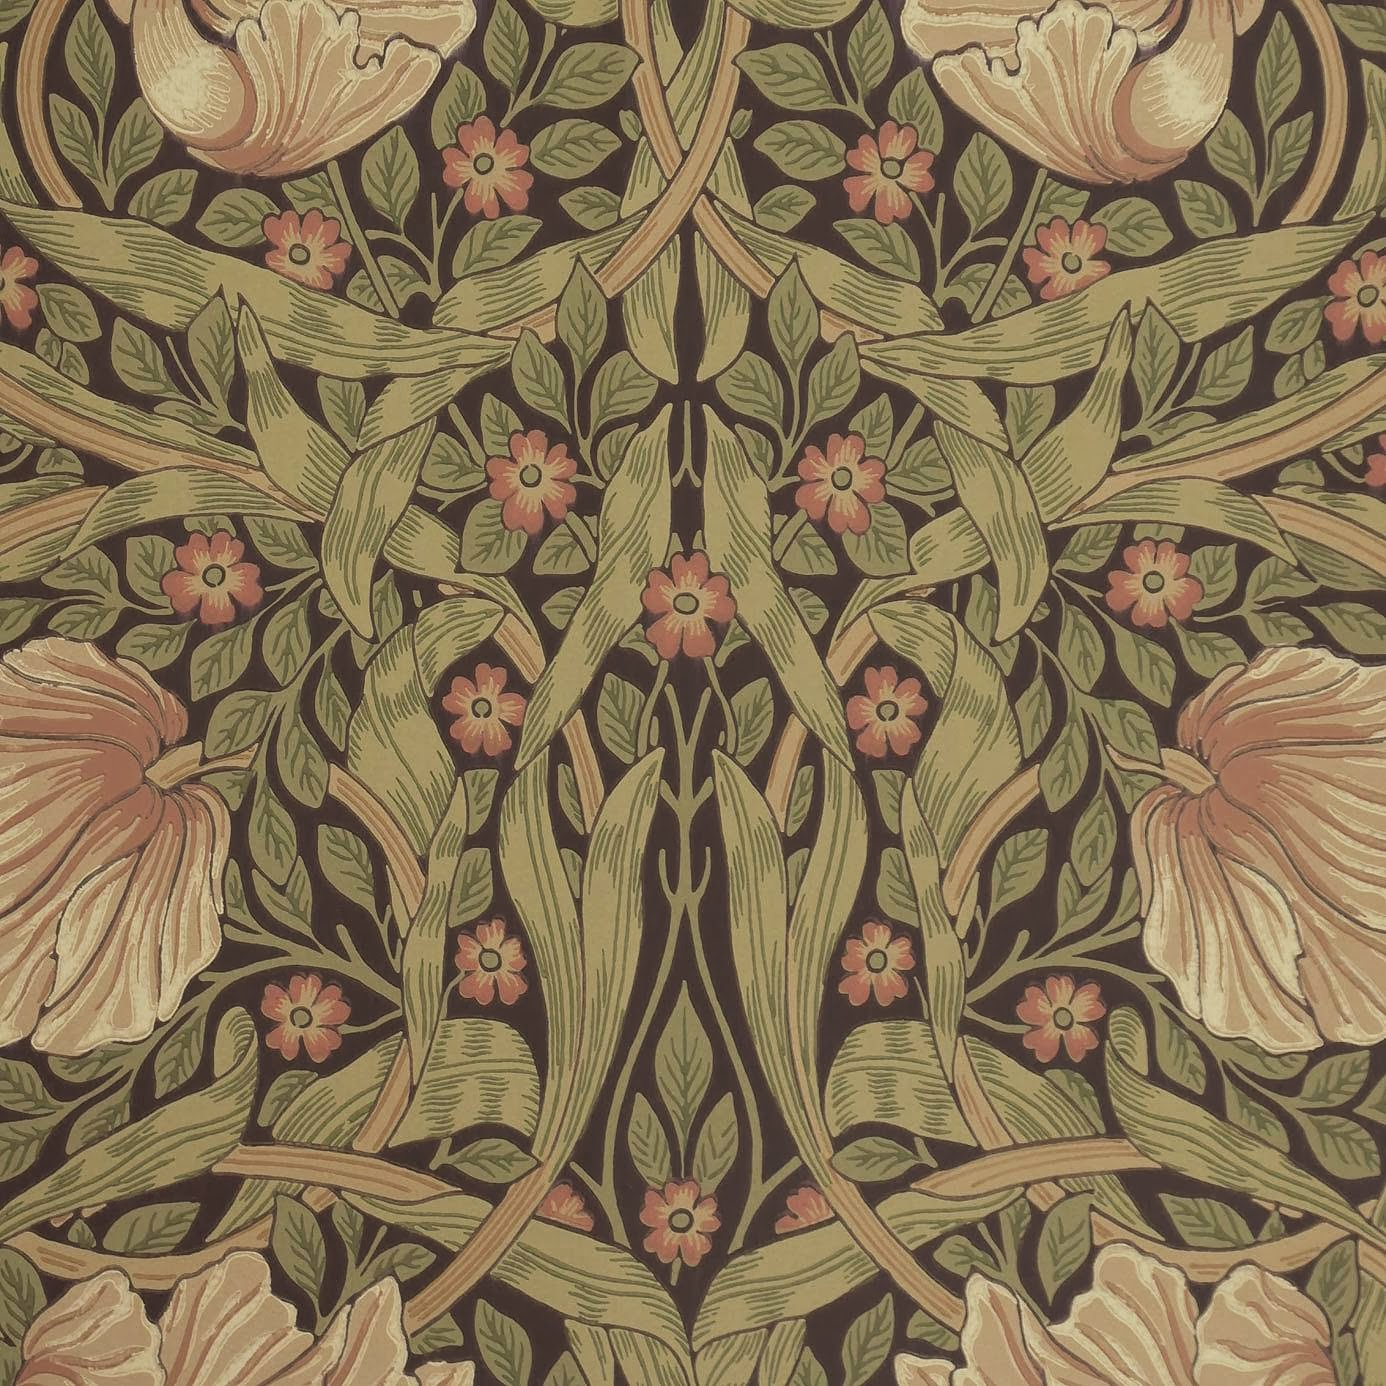 Arts and crafts movement design - They Felt That Automation Took Design And Quality Out Of The Products Also They Believed That The Artistic Standards Brought About By Industrialisation